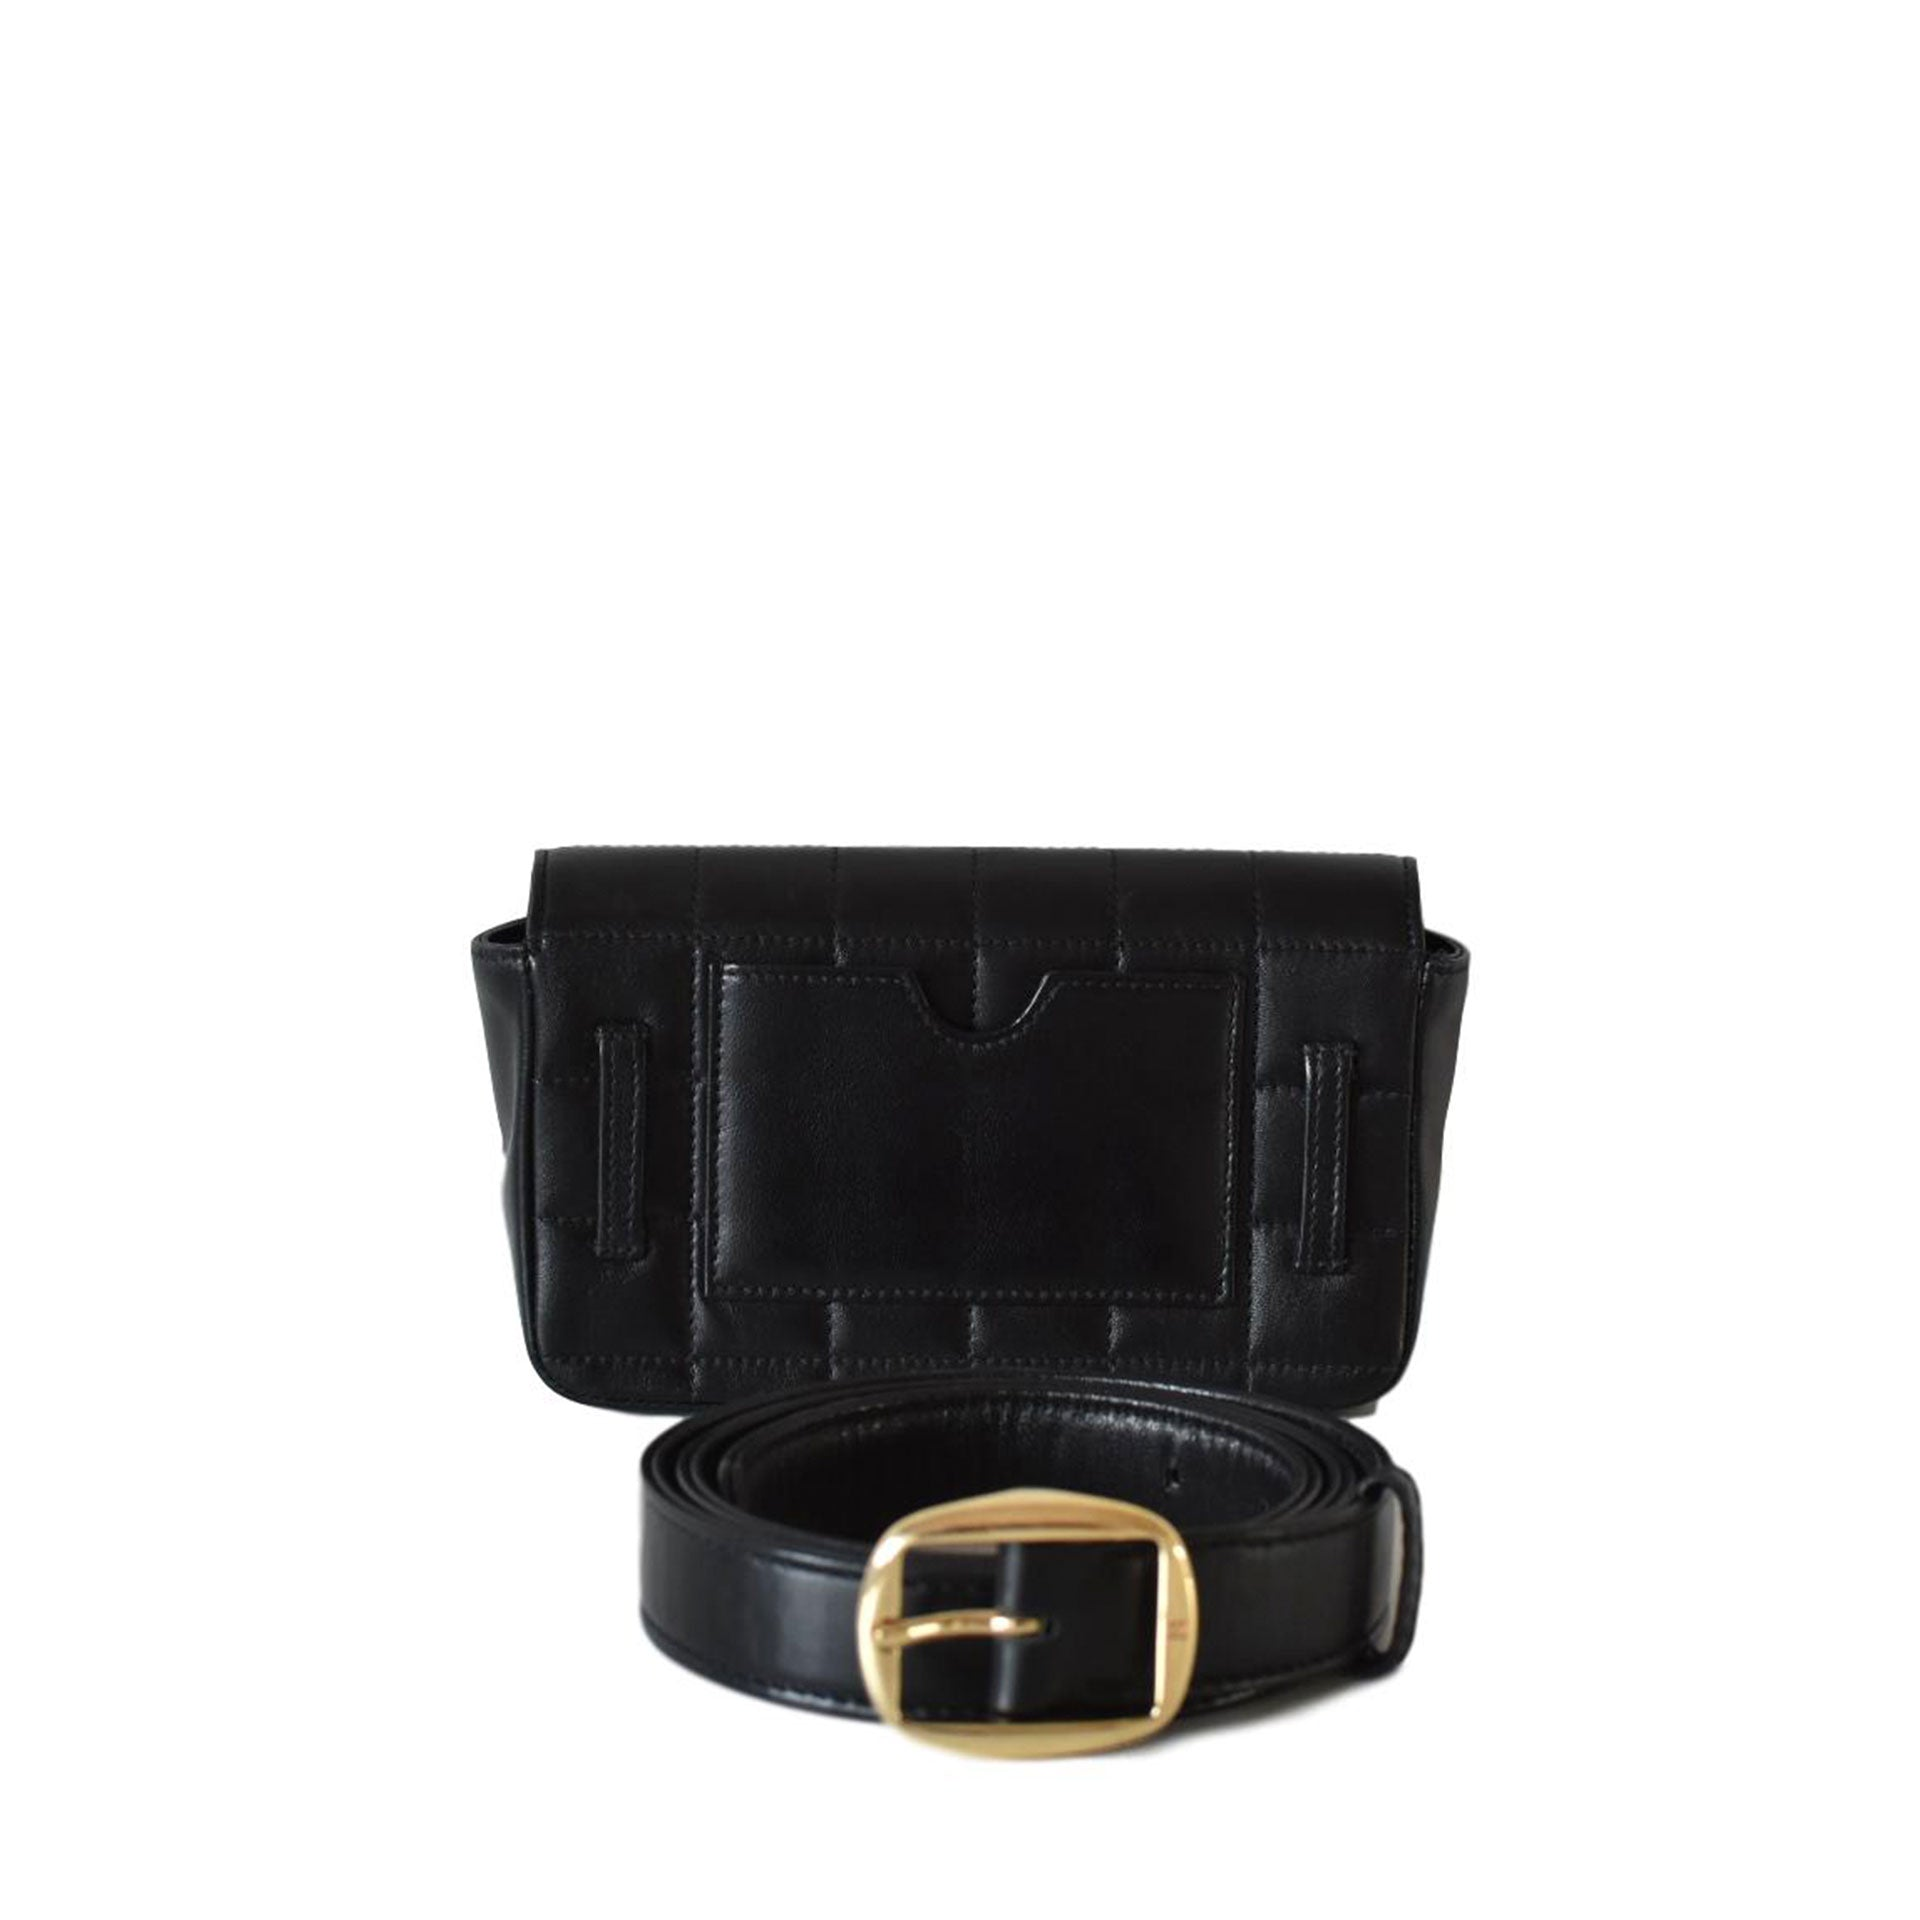 19f960aac42976 Chanel Vintage Square Quilted Fanny Pack Waist Bum Bag – House of Carver